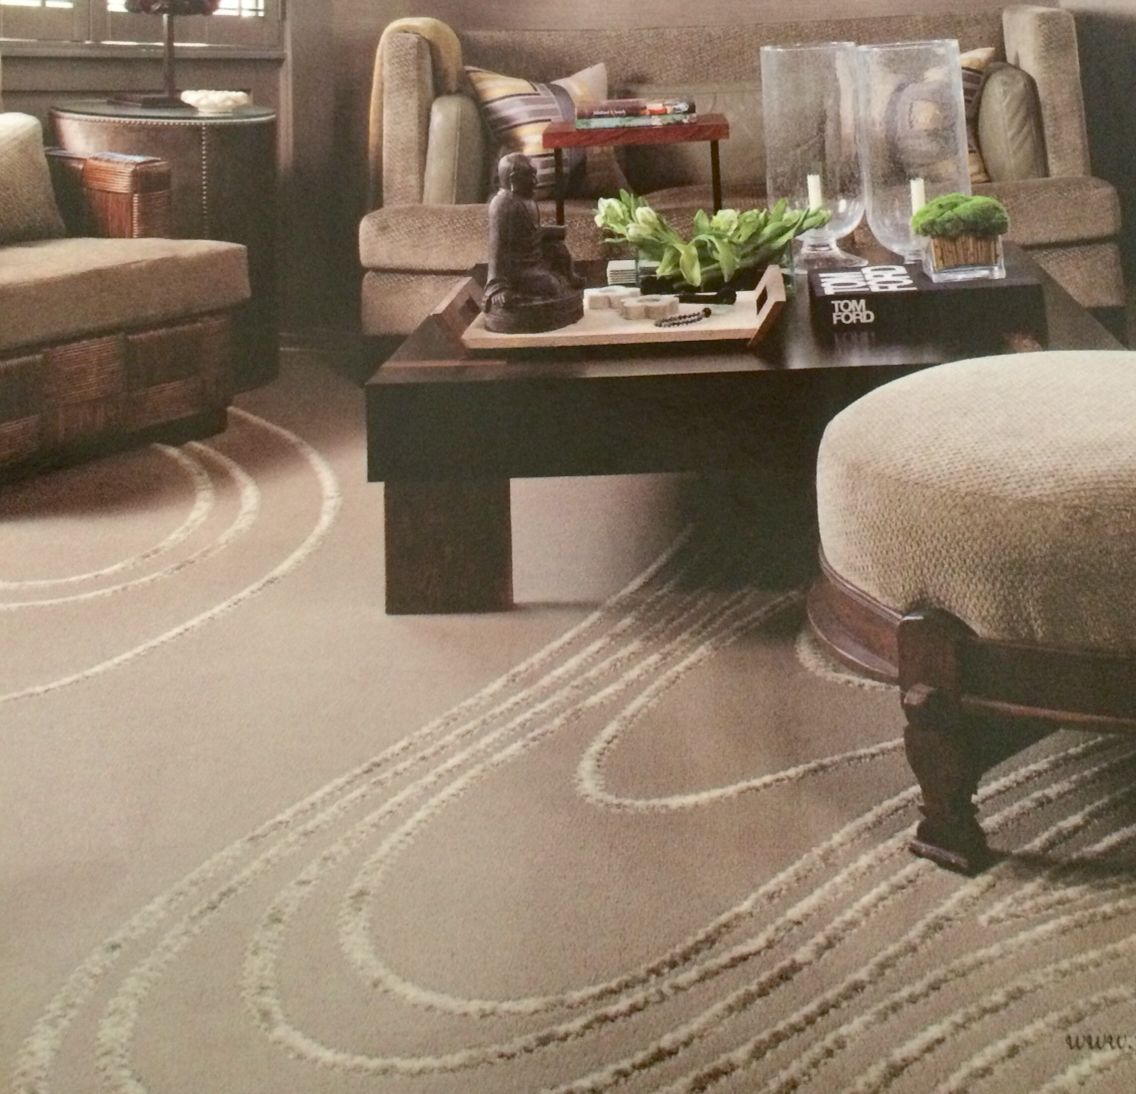 THIS rug